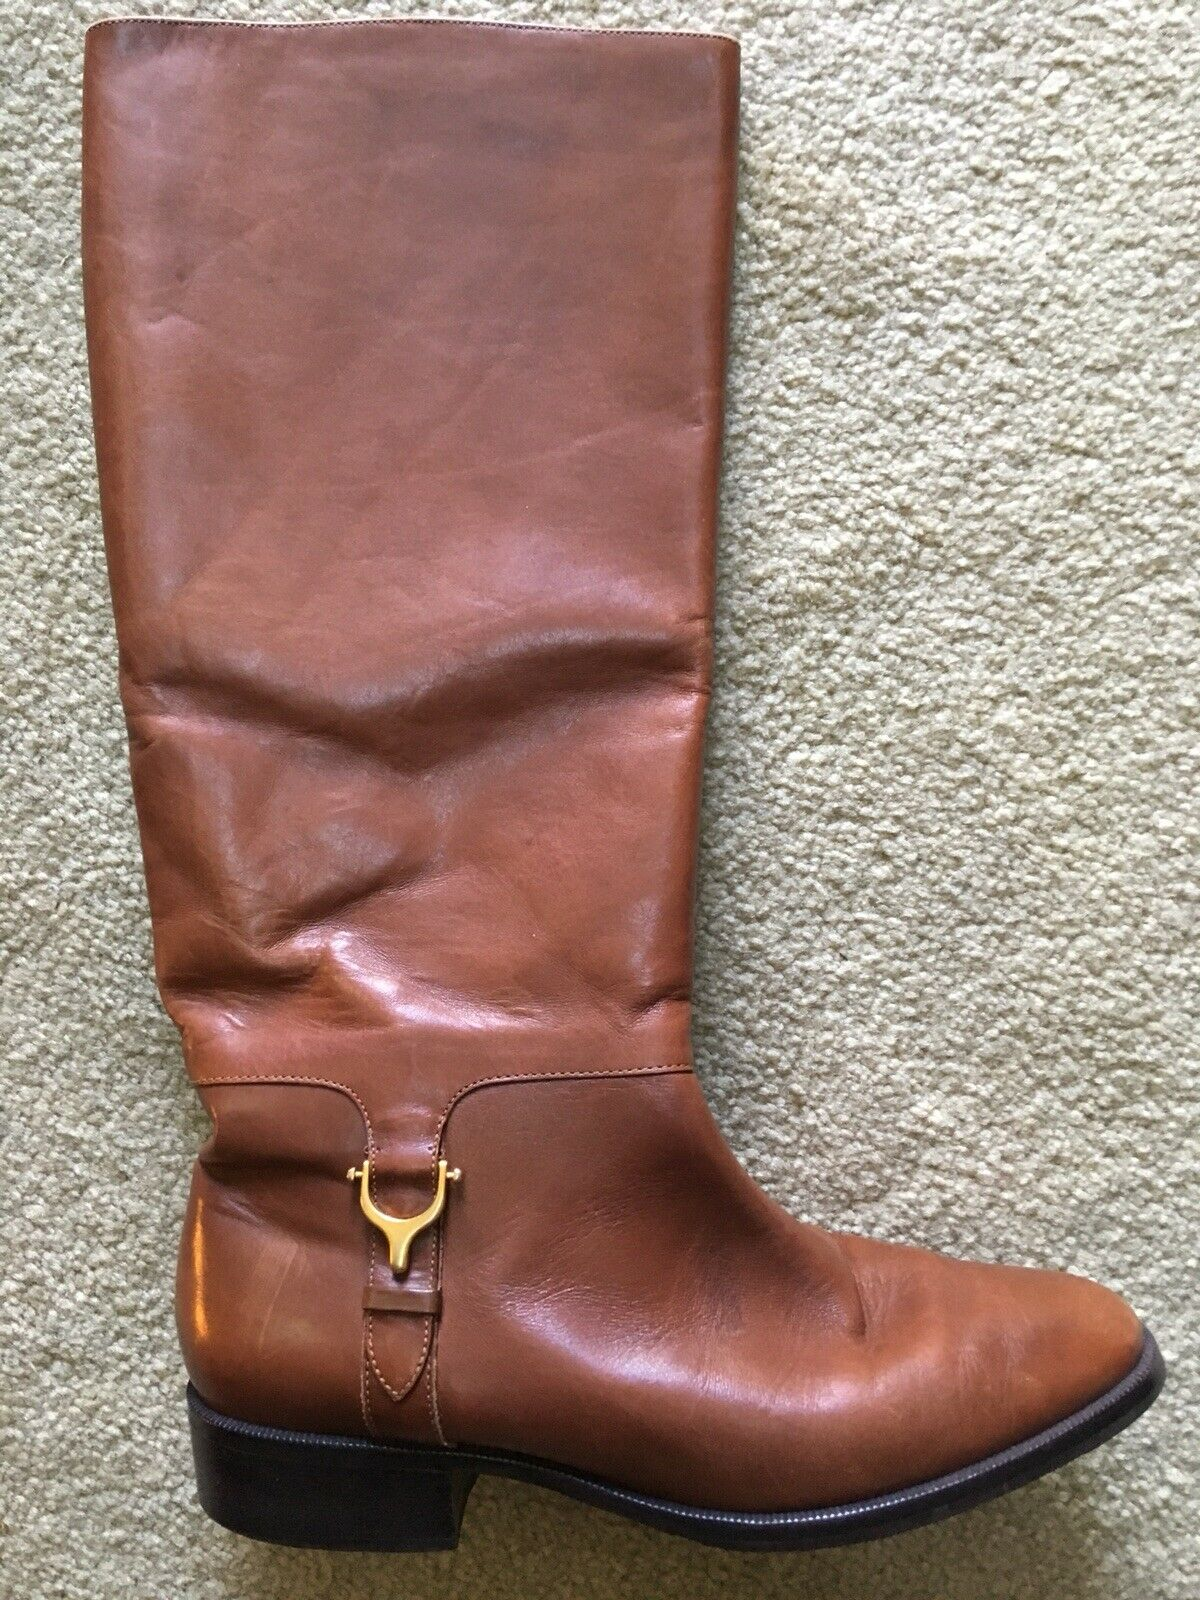 Cognac Brown Etienne Aigner Leather Knee Boots Women 8 DERBY